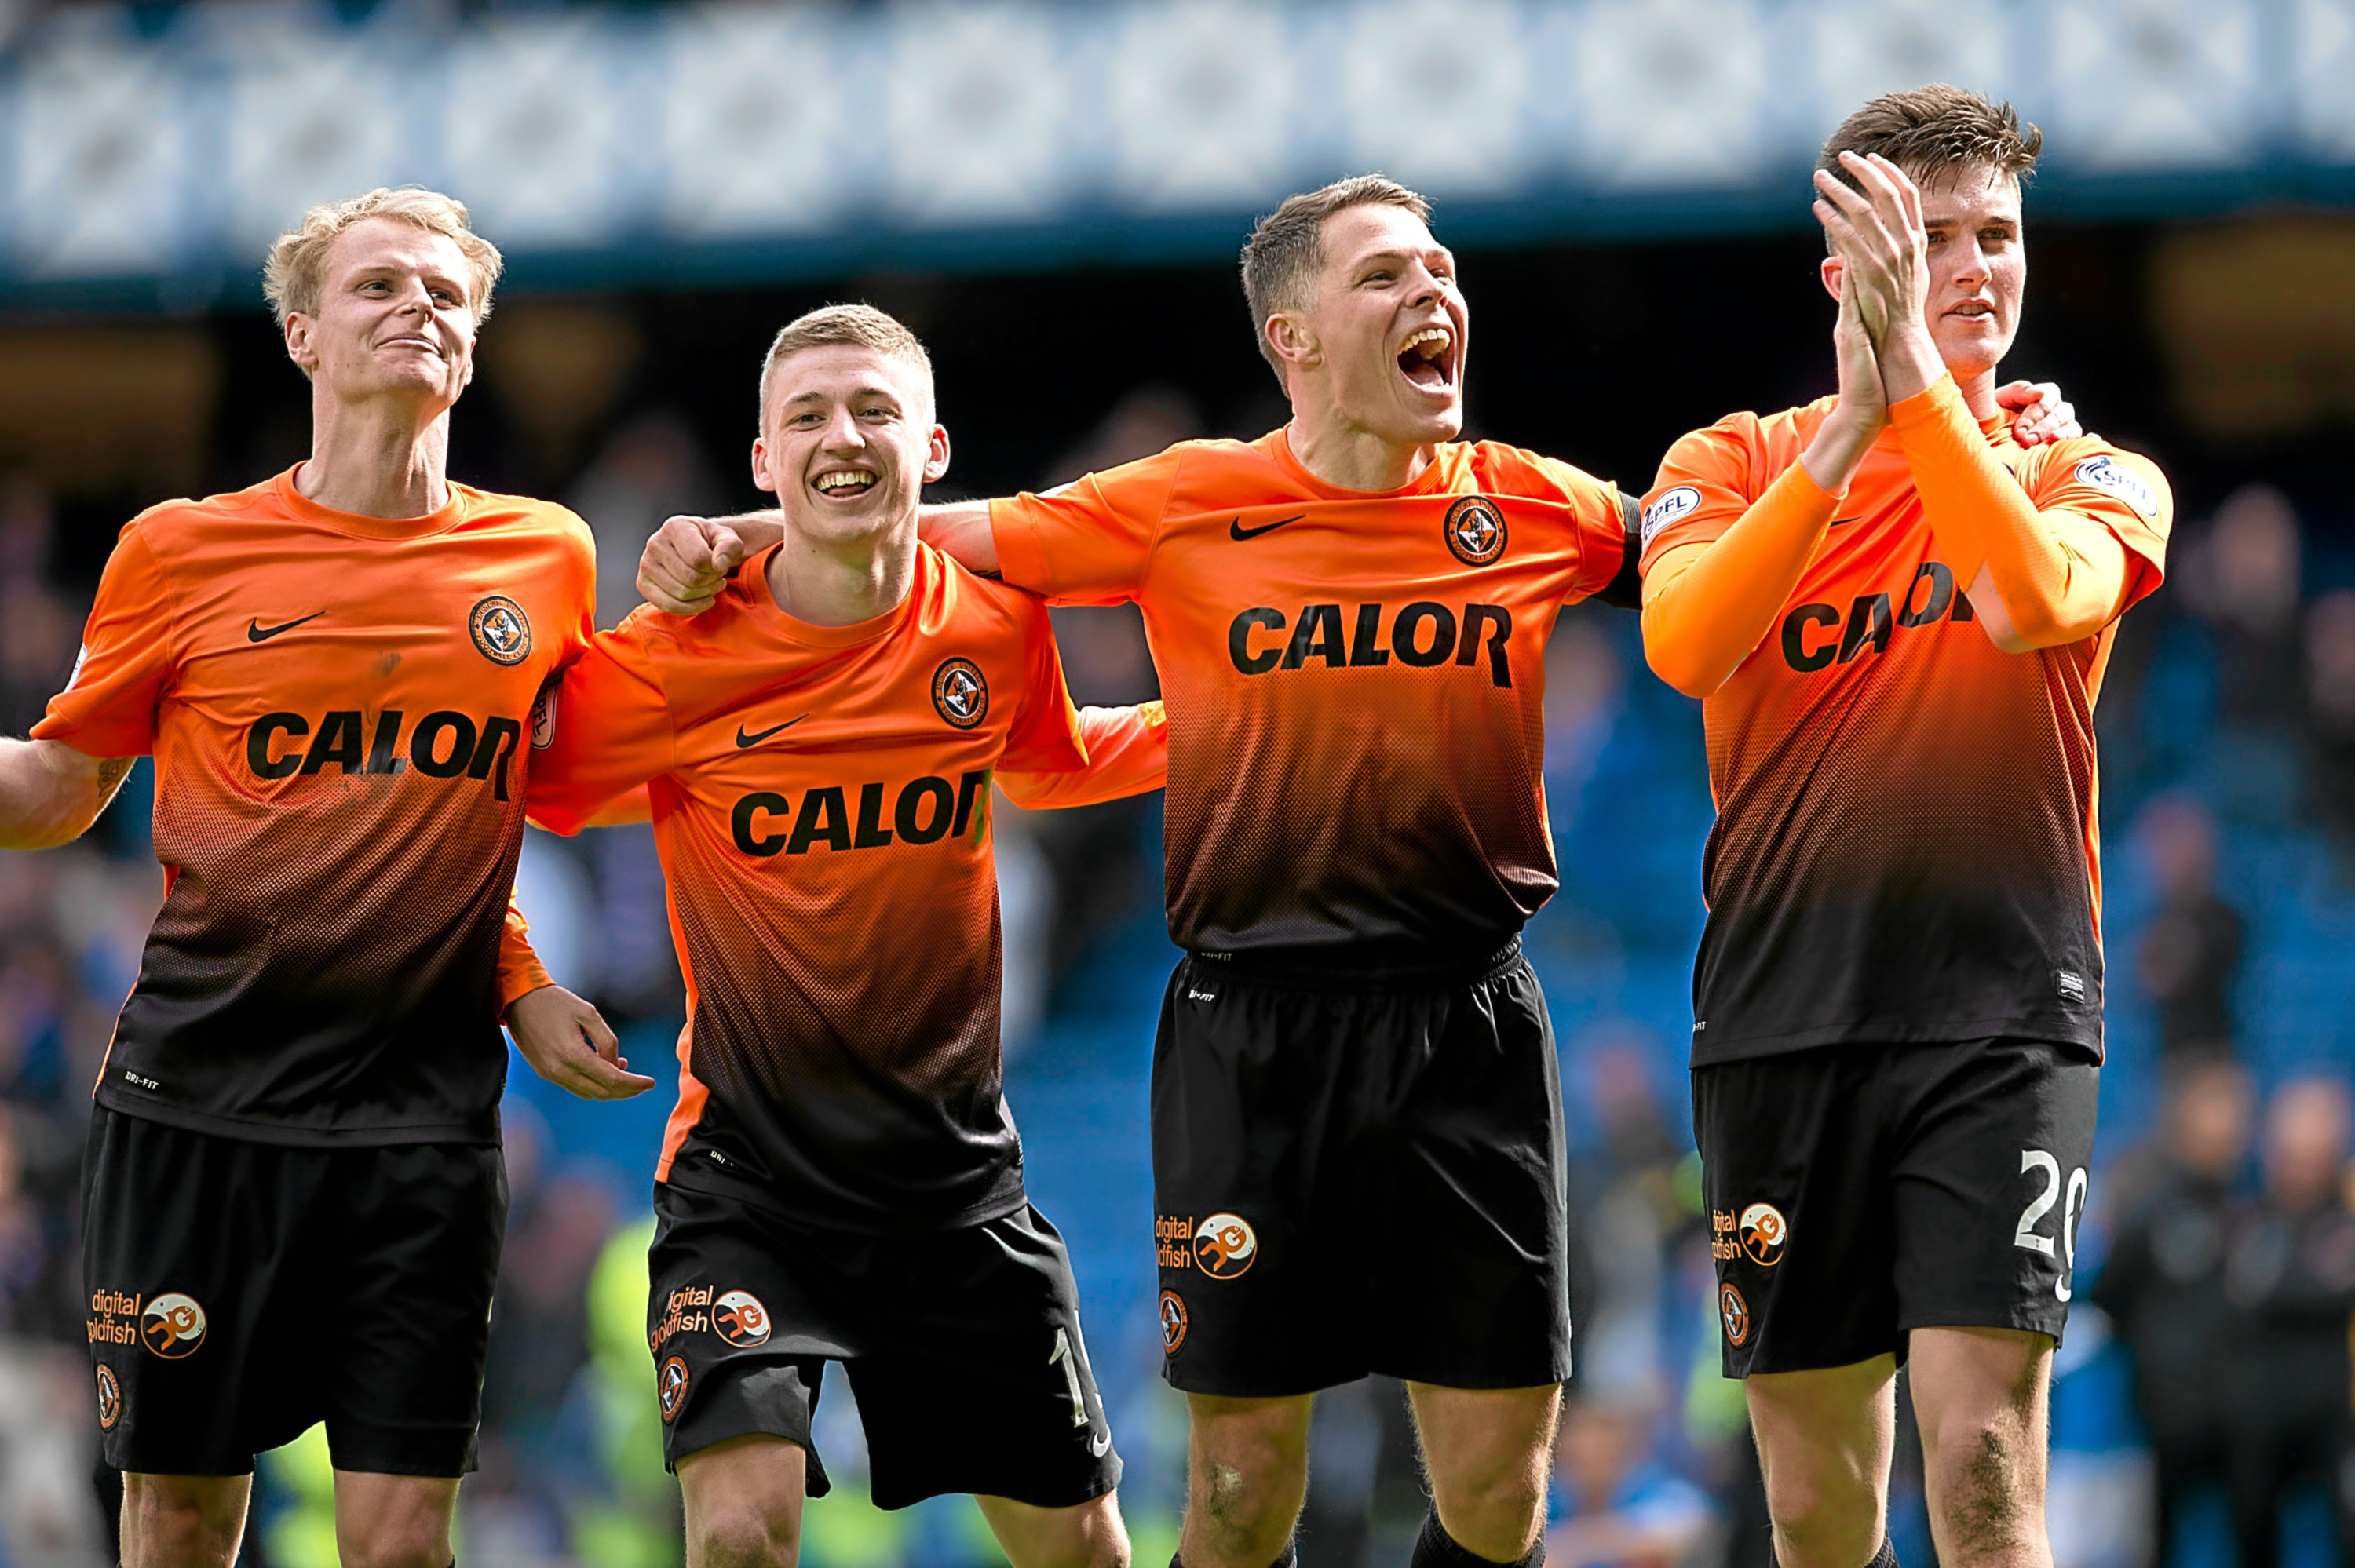 John Rankin's greatest memory as a Dundee United player came in 2014 at Ibrox when United beat Rangers in the Scottish Cup semi-final. Rankin is pictured above celebrating that win.